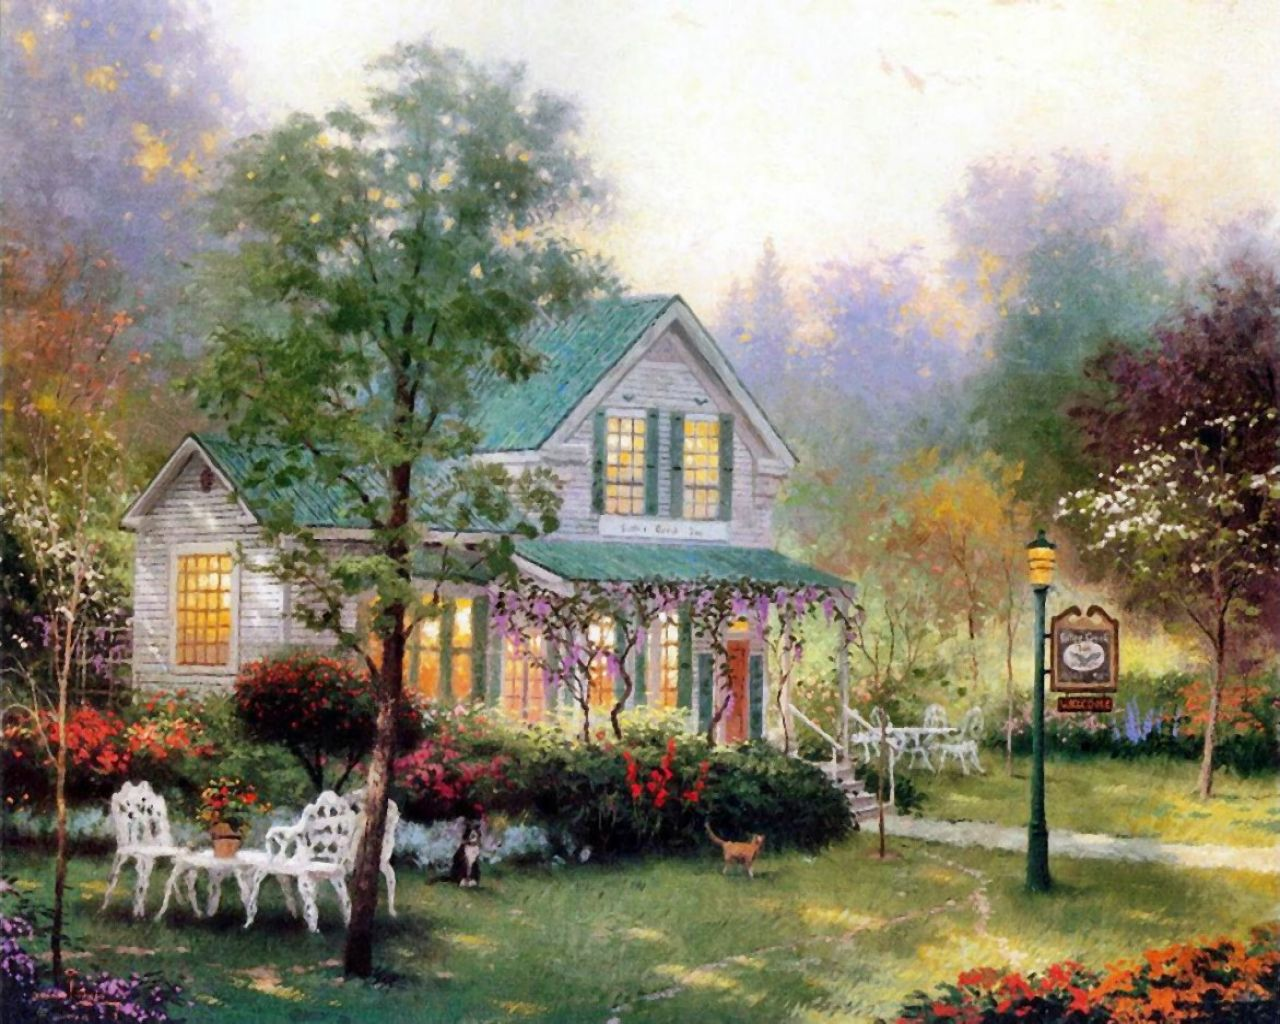 reproduction businesses of thomas kinkades painting Thomas kinkade reproductions by sunny thomas kinkade, born in 1958, grew up in a small quiet town in california named placerville along the foothills of the sierra mountains by age six, his interest in art was obviously growing at an impressive rate and by age sixteen he was already accomplished enough in oil painting to begin working.